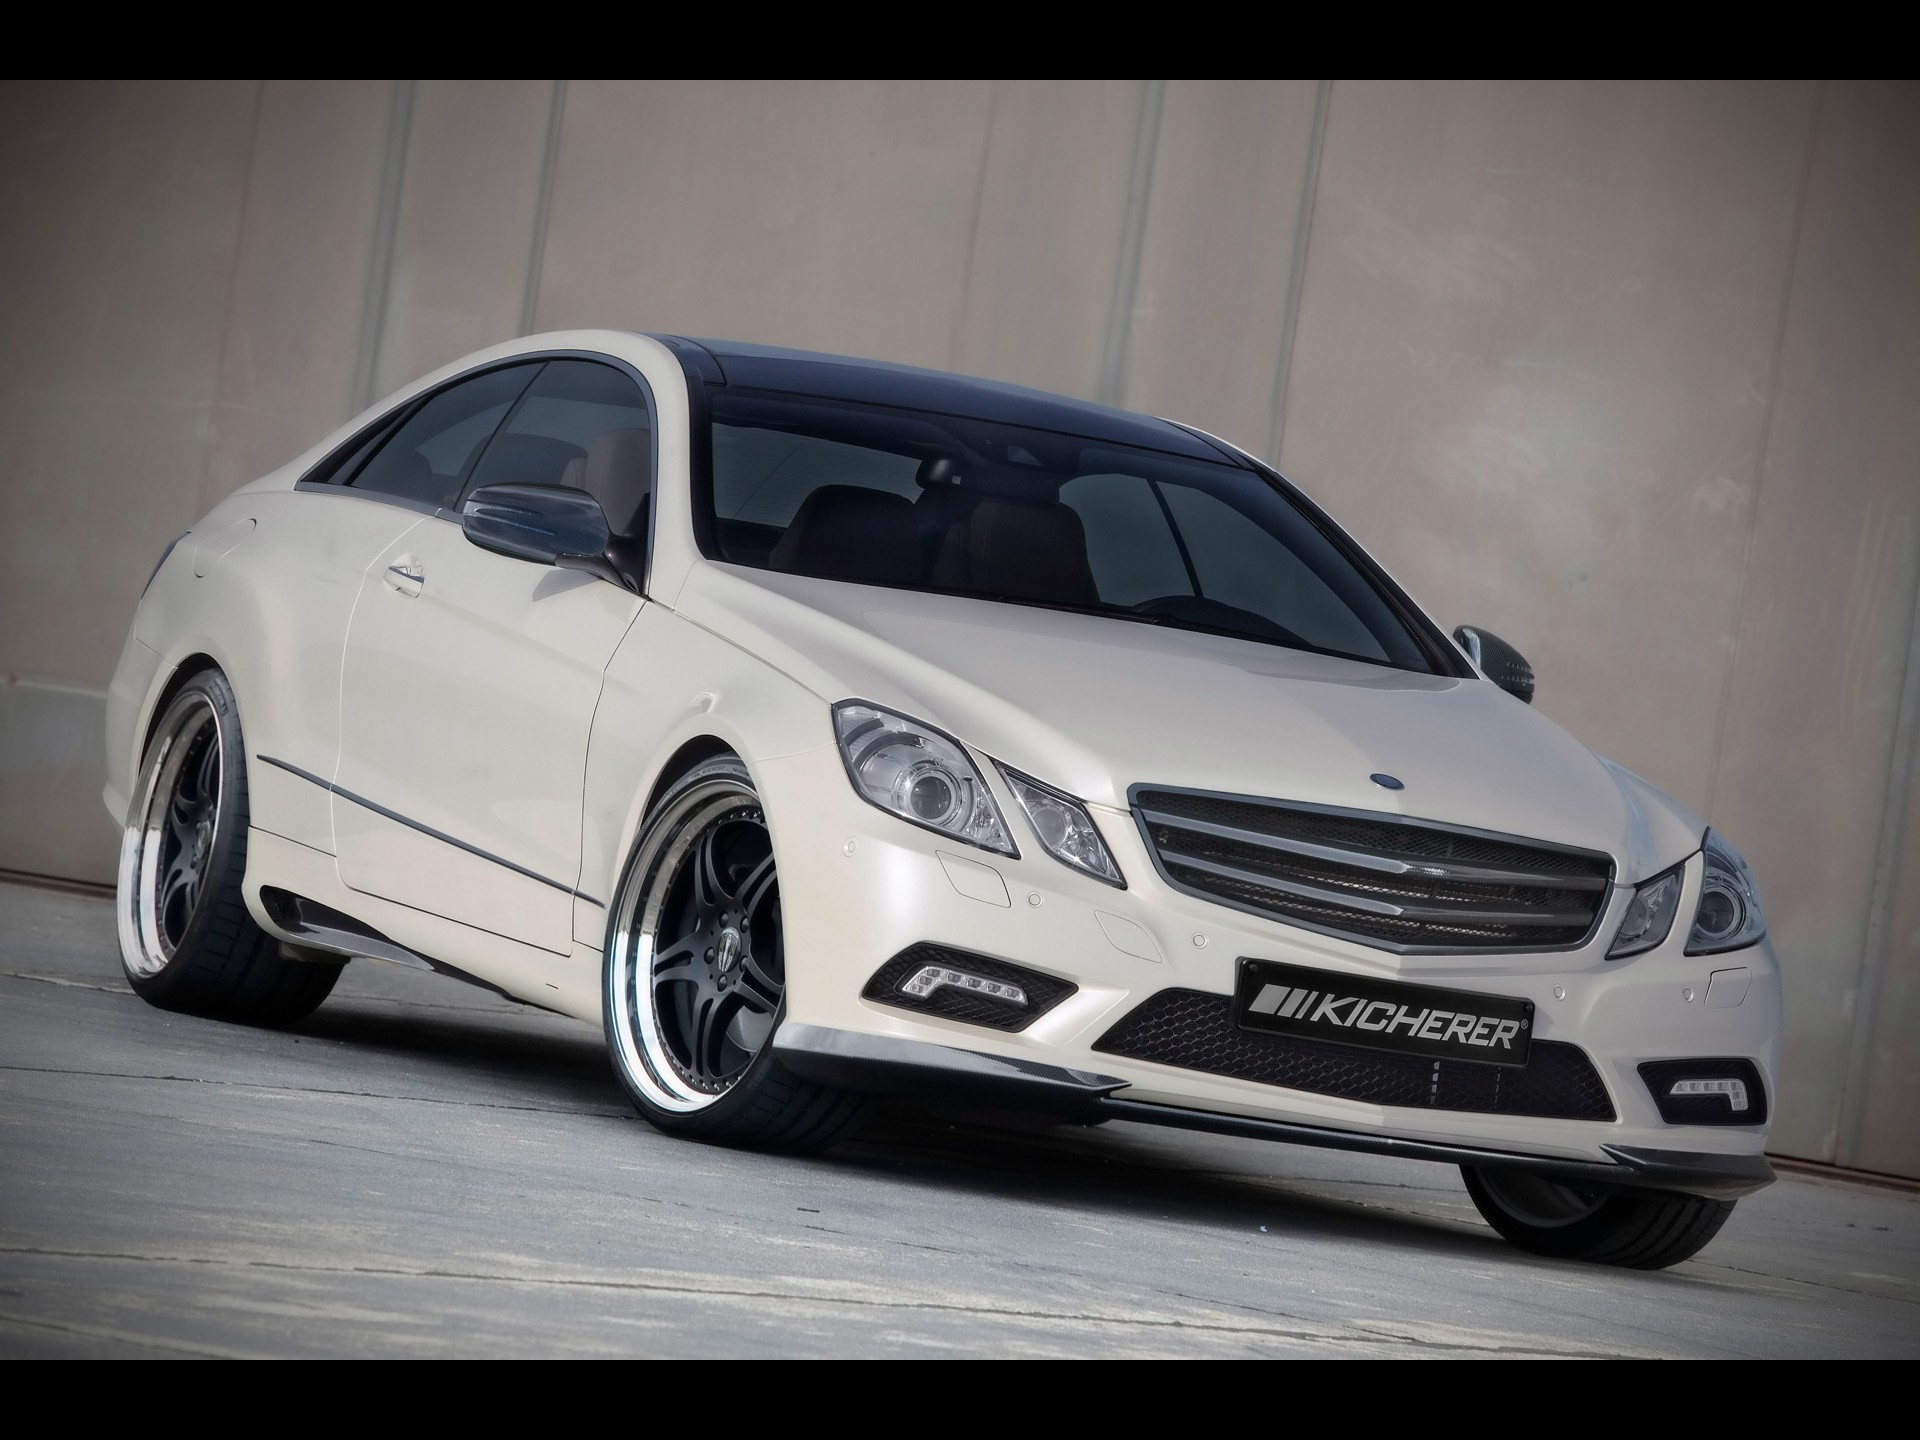 2010 kicherer mercedes benz e 50 coupe performance